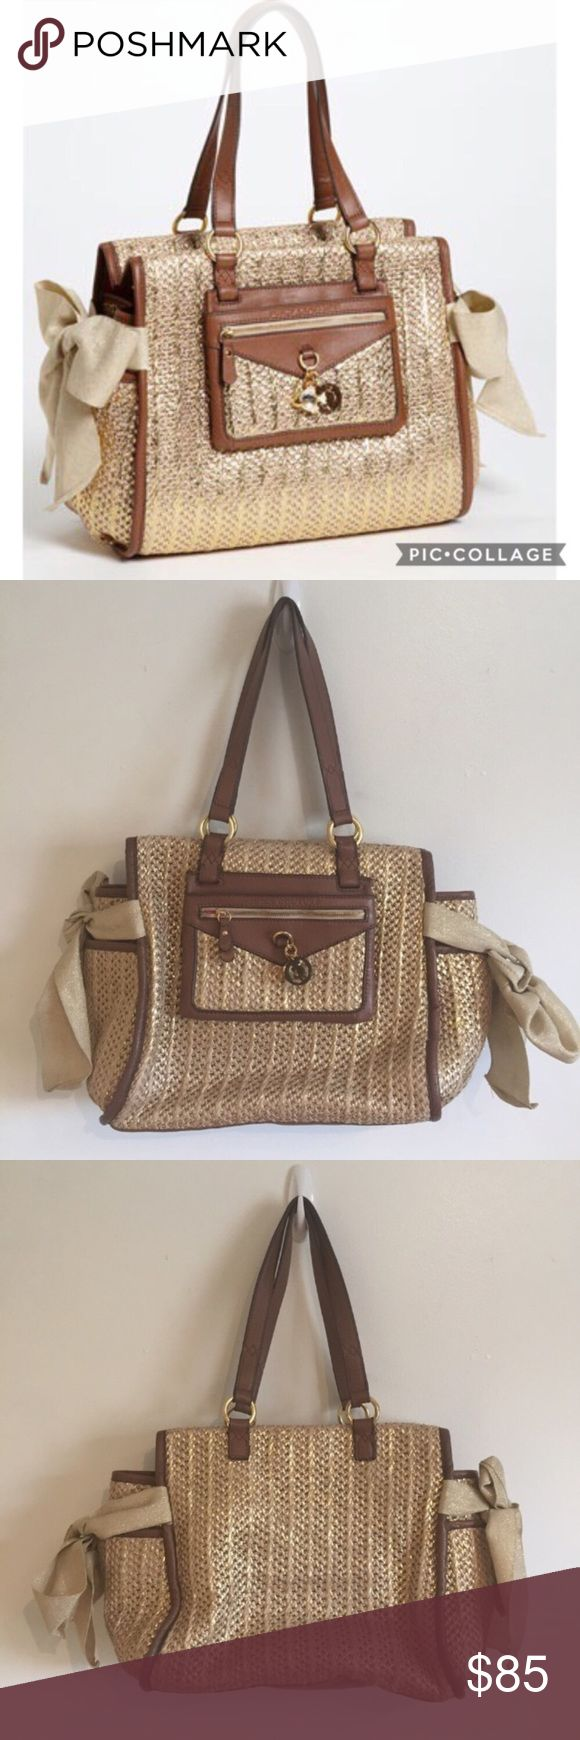 """JUICY COUTURE Dock of The Bay Metallic Straw Purse Juicy Couture """"dock of the bay"""" Metallic daydreamer woven straw wicker jute purse. Has flap Pocket with rhinestone fish charm on front. Inner zipper pocket and cell phone pocket. Zips closed. Does have a few minor fraying/pulled spots as shown in photos. Fun nautical chic vibes. Absolutely perfect for summer vacation! Measures 12"""" Wide at the base (side pockets stick out further) and 11"""" tall. Nice and roomy without being too heavy.  No…"""